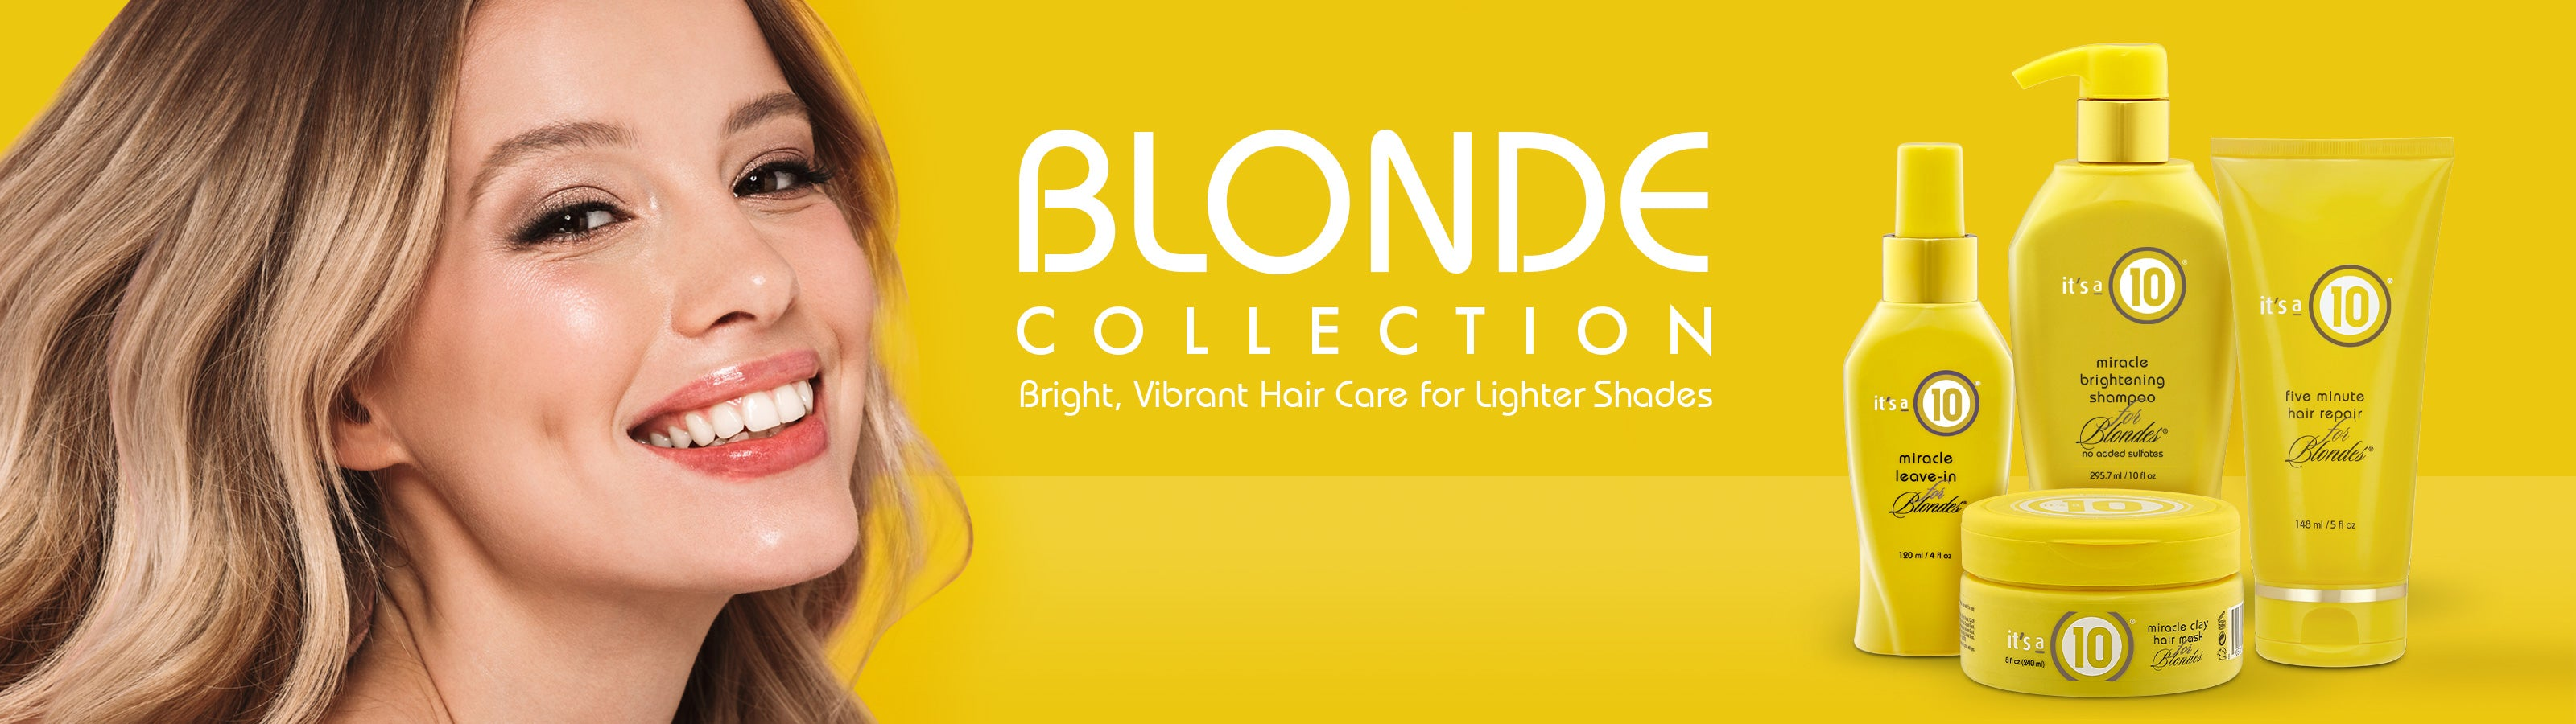 Blonde Collection